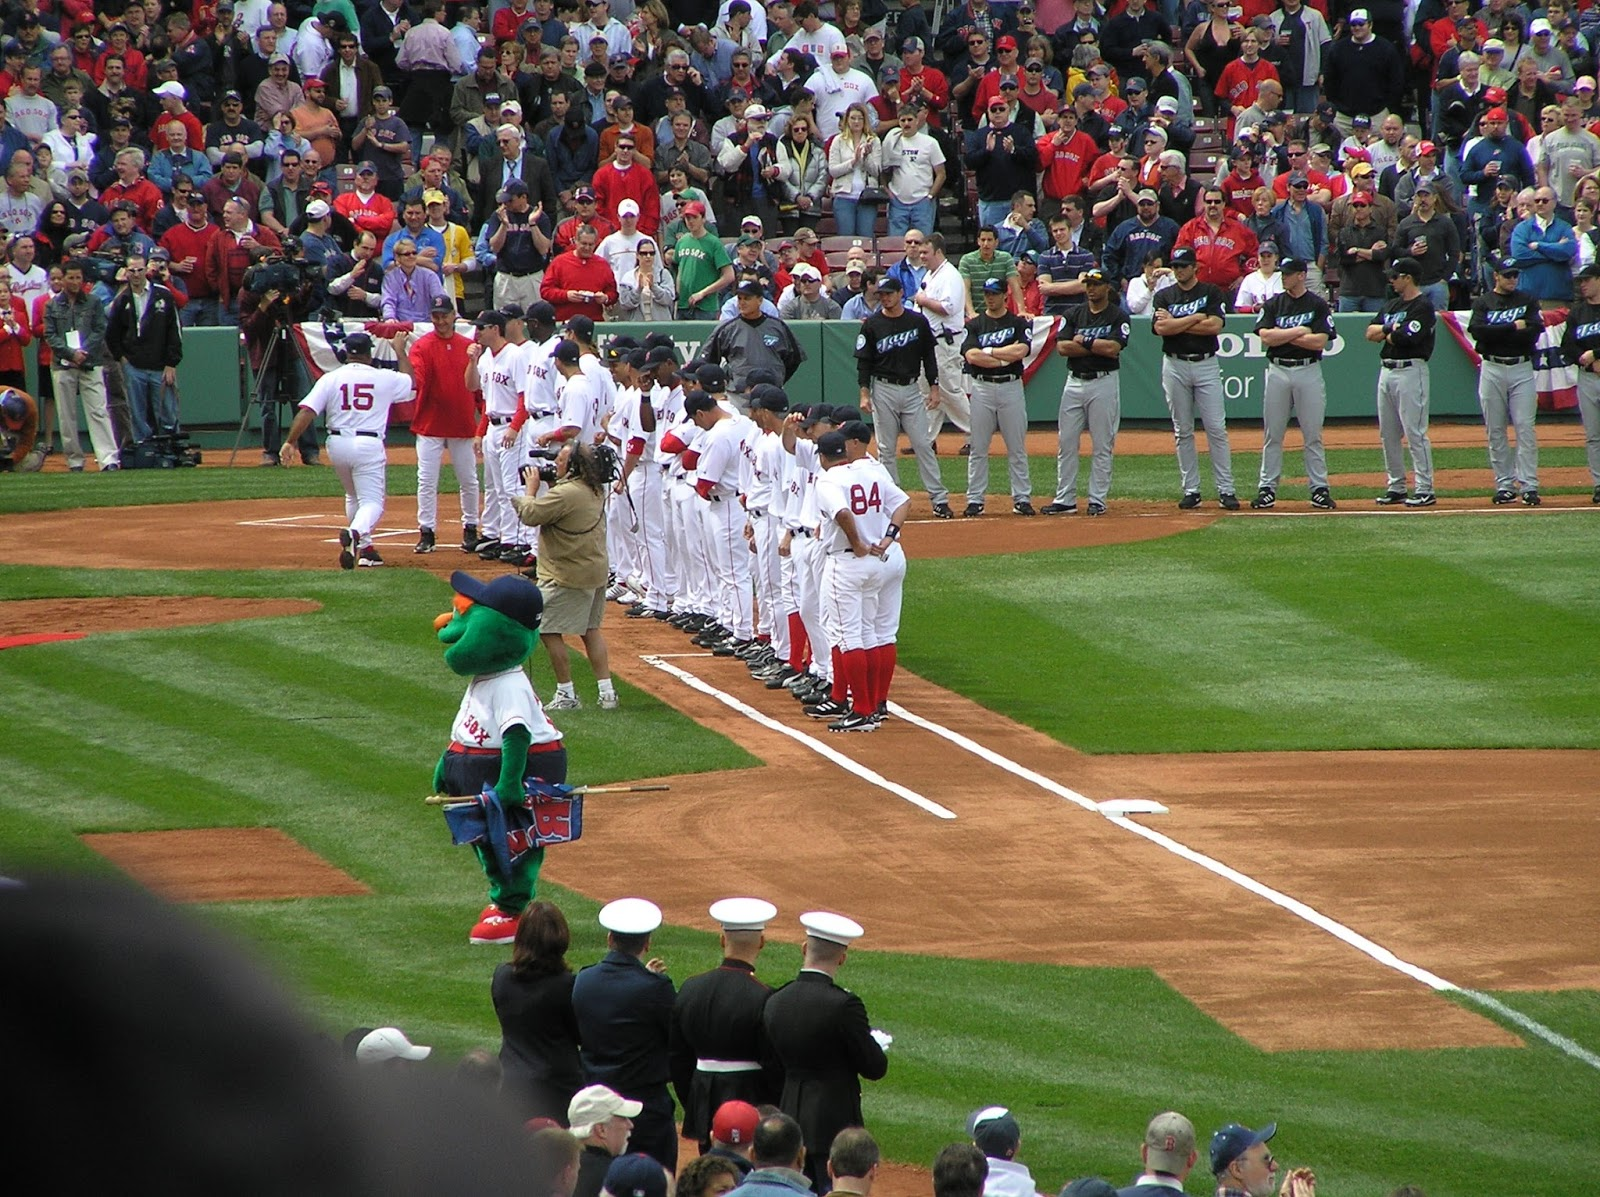 0d5f1f76c8c310 This is the team that broke the Curse of the Bambino in spectacular  fashion, coming from behind to smash their arch-rivals the New York Yankees  and win the ...